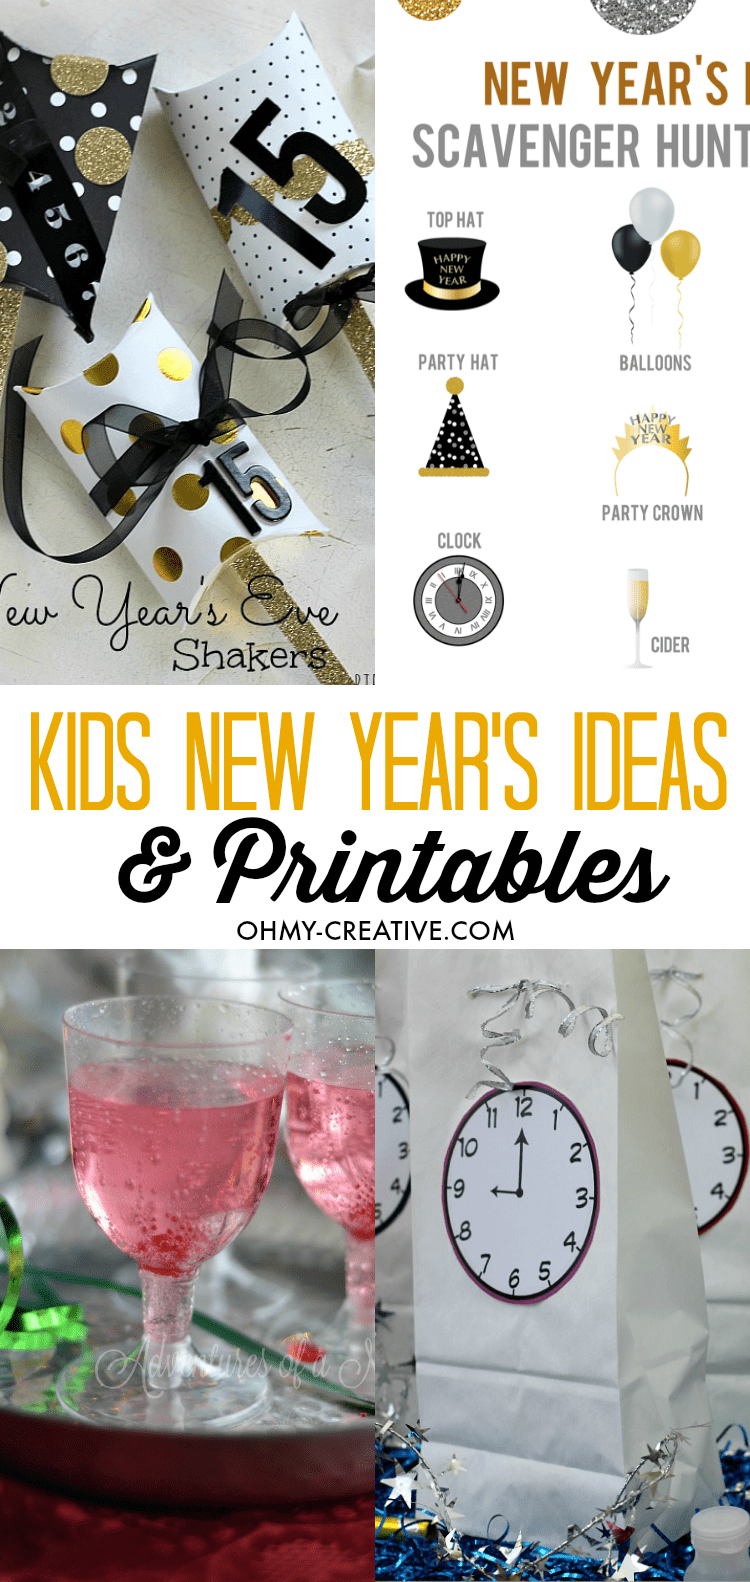 Make New Year's Eve extra special with these Kids New Year's Eve Ideas and Printables - fun kids drinks too!  |  OHMY-CREATIVE.COM